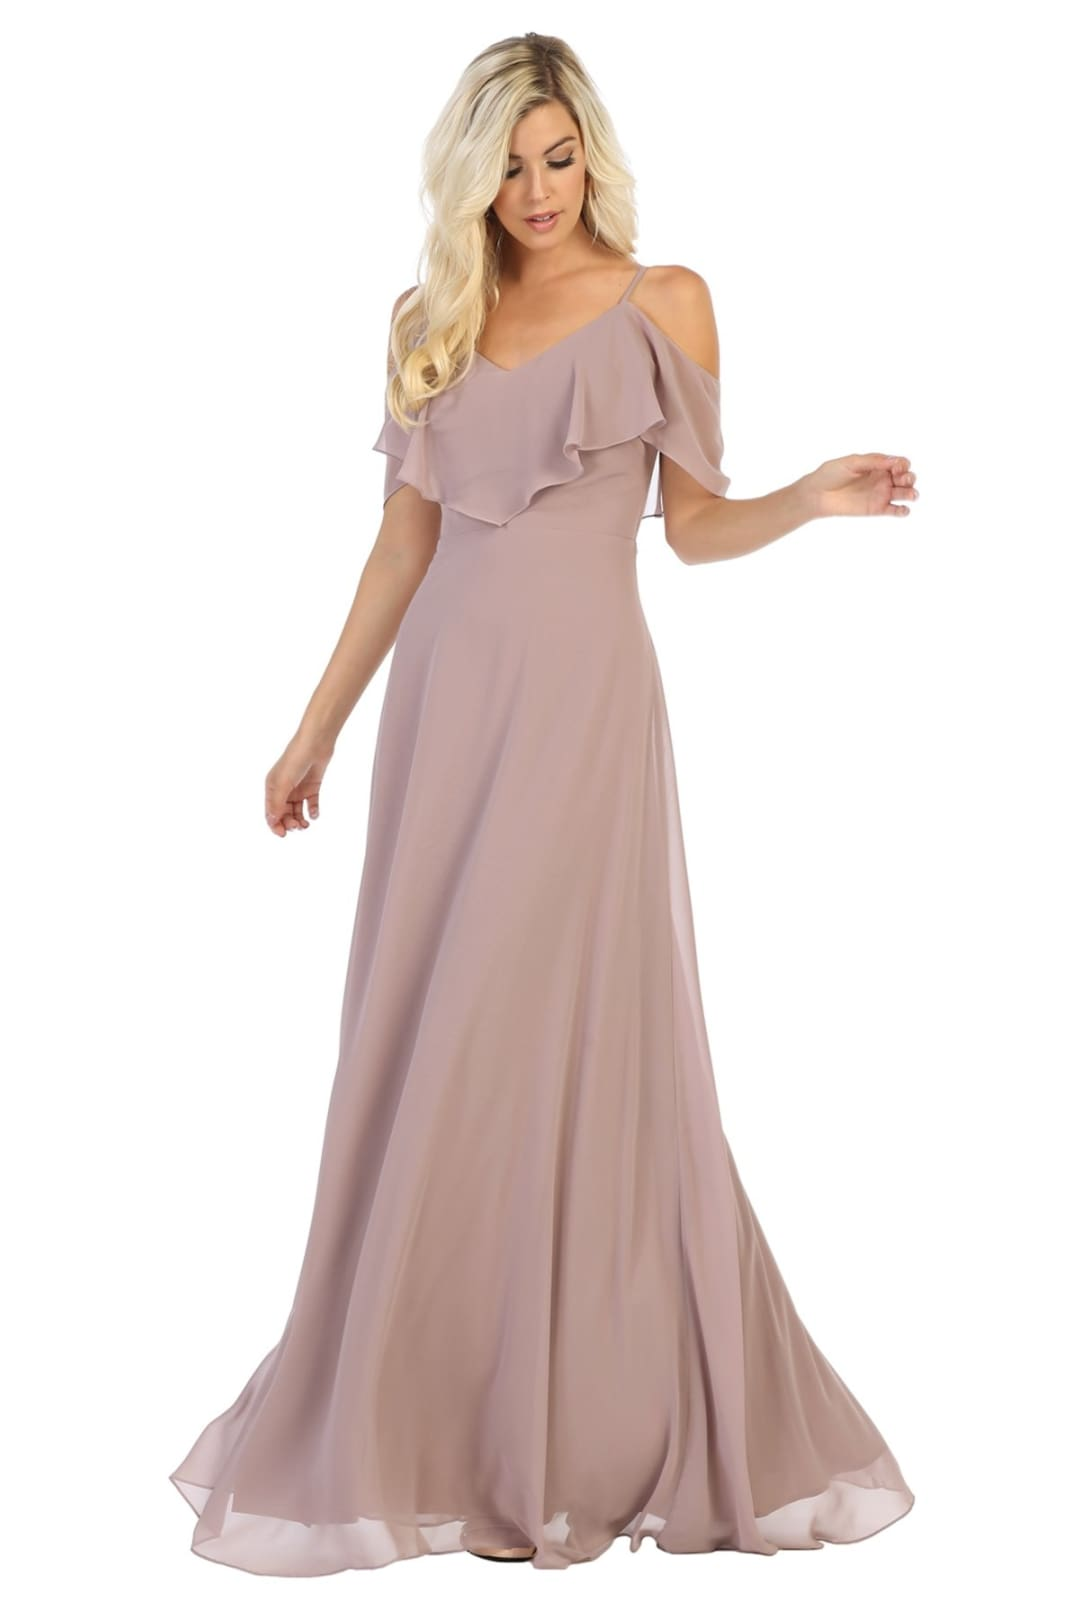 Simple & Elegant Dress - Mauve / 4